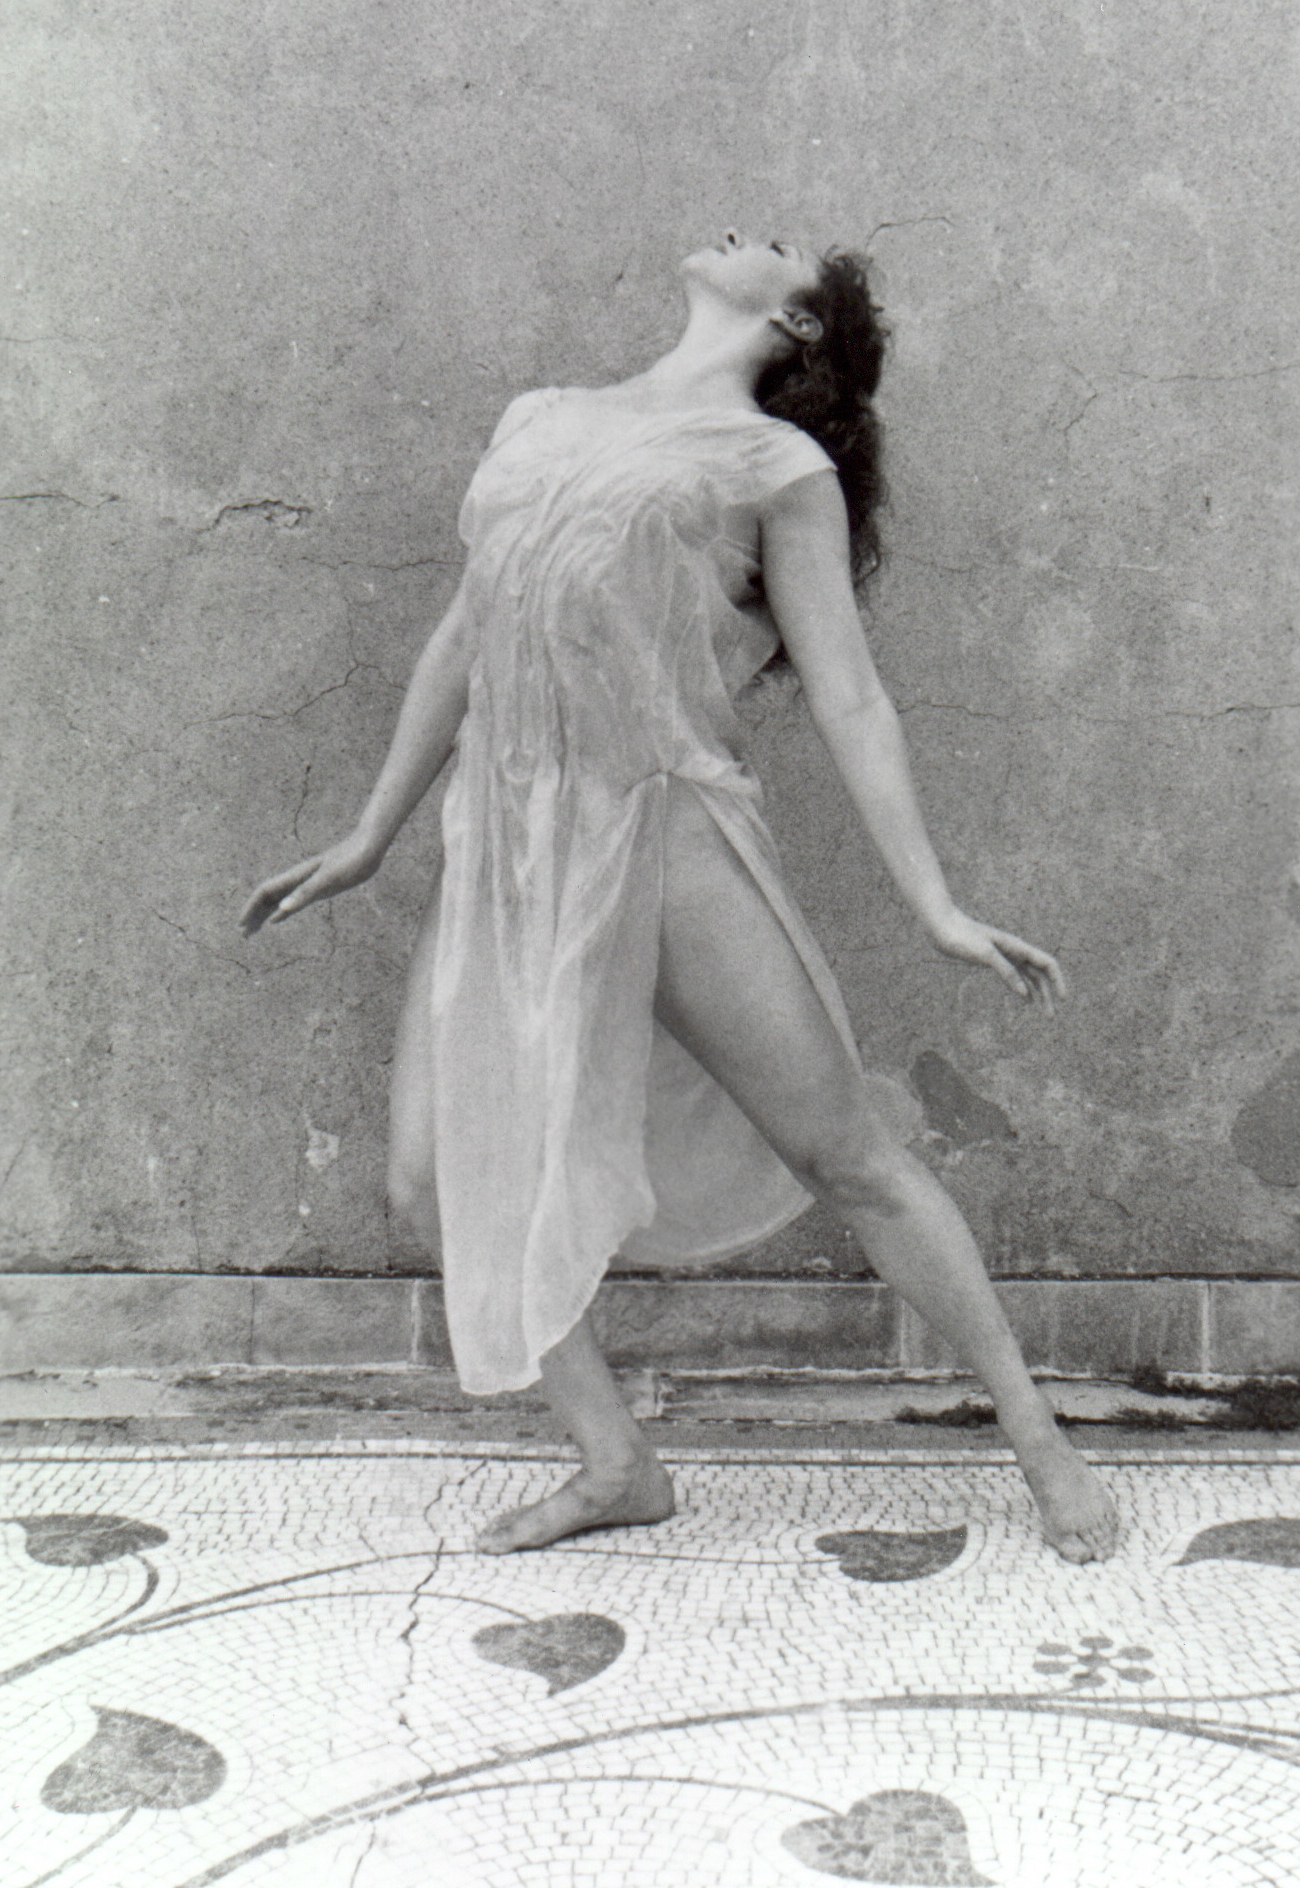 Nude Vibrations Isadora Duncans Creatural Aesthetic Modernism